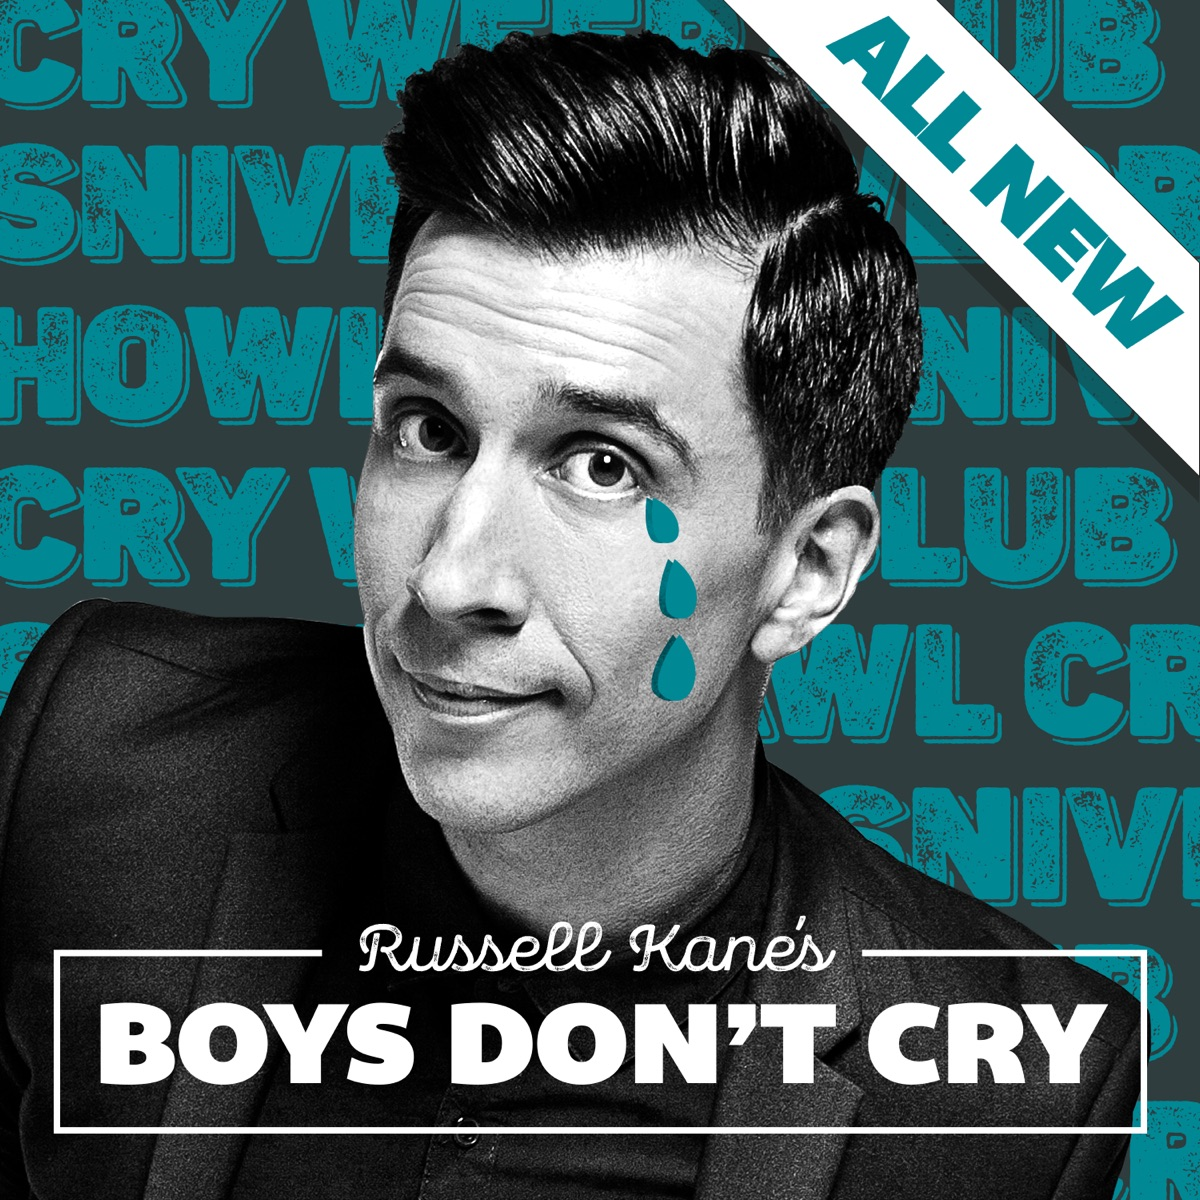 Russell Kane's Boys Don't Cry